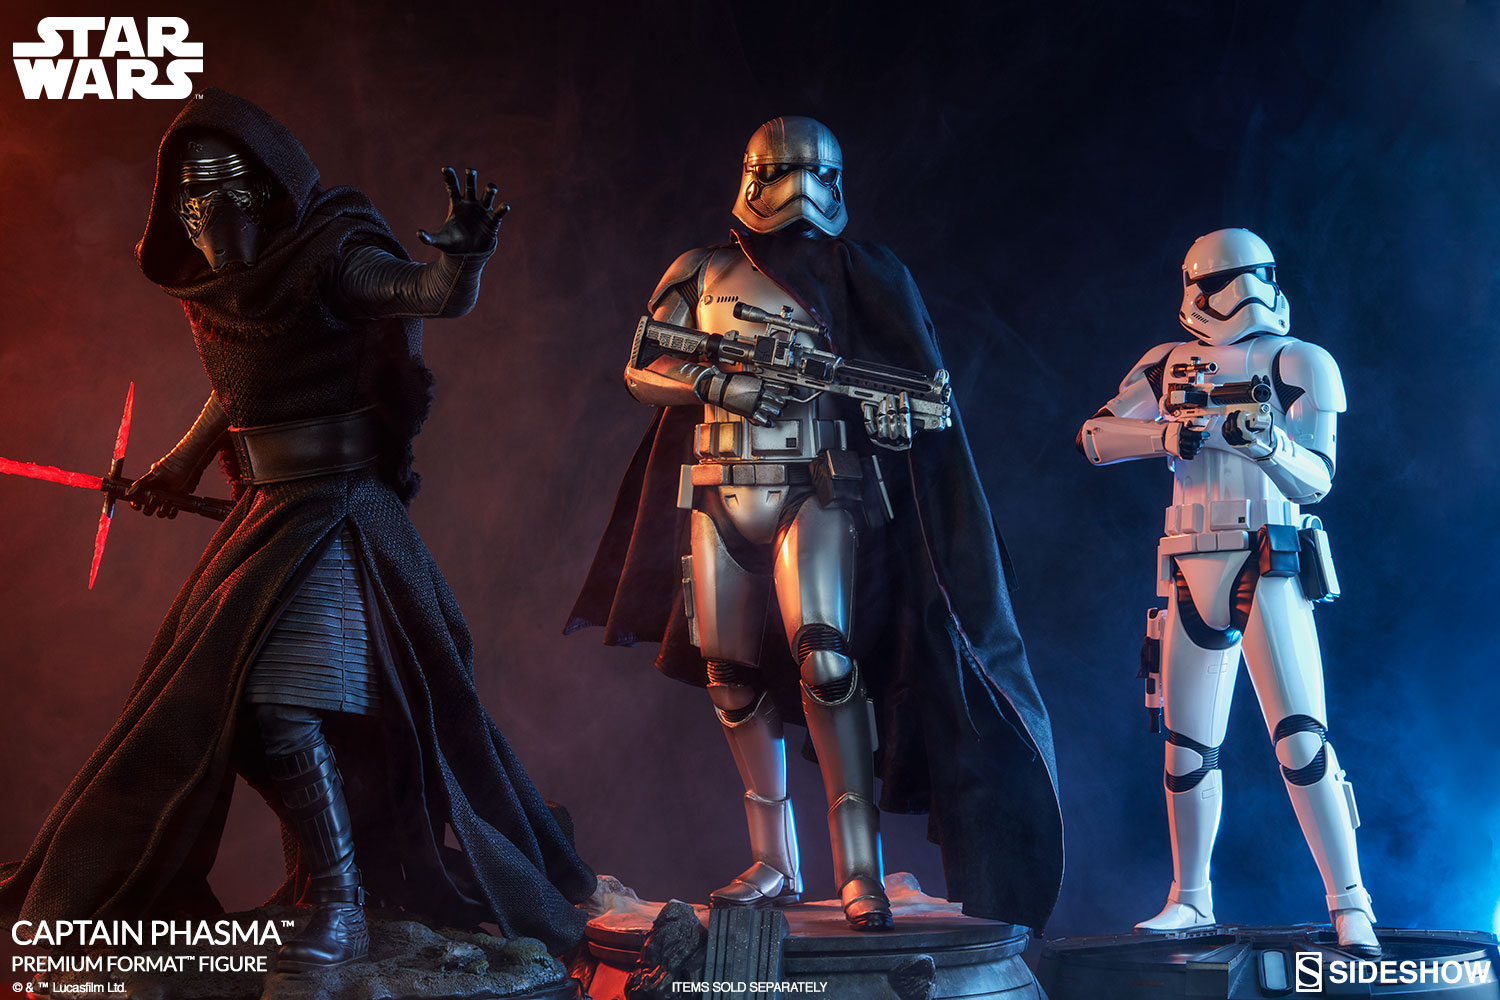 star wars captain phasma premium format tm figure by sidesh sideshow collectibles. Black Bedroom Furniture Sets. Home Design Ideas